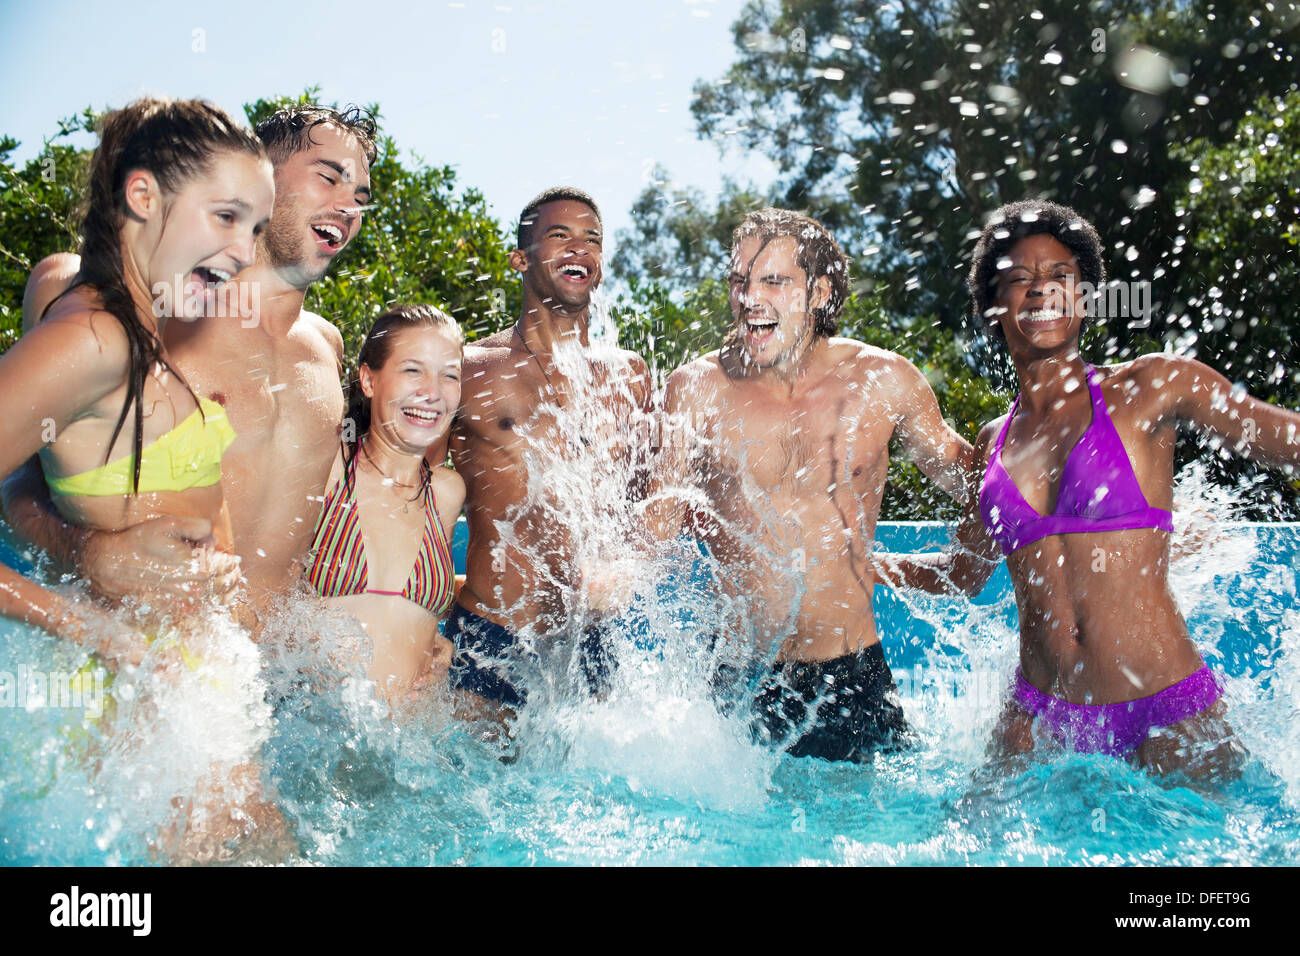 Friends playing in swimming pool - Stock Image